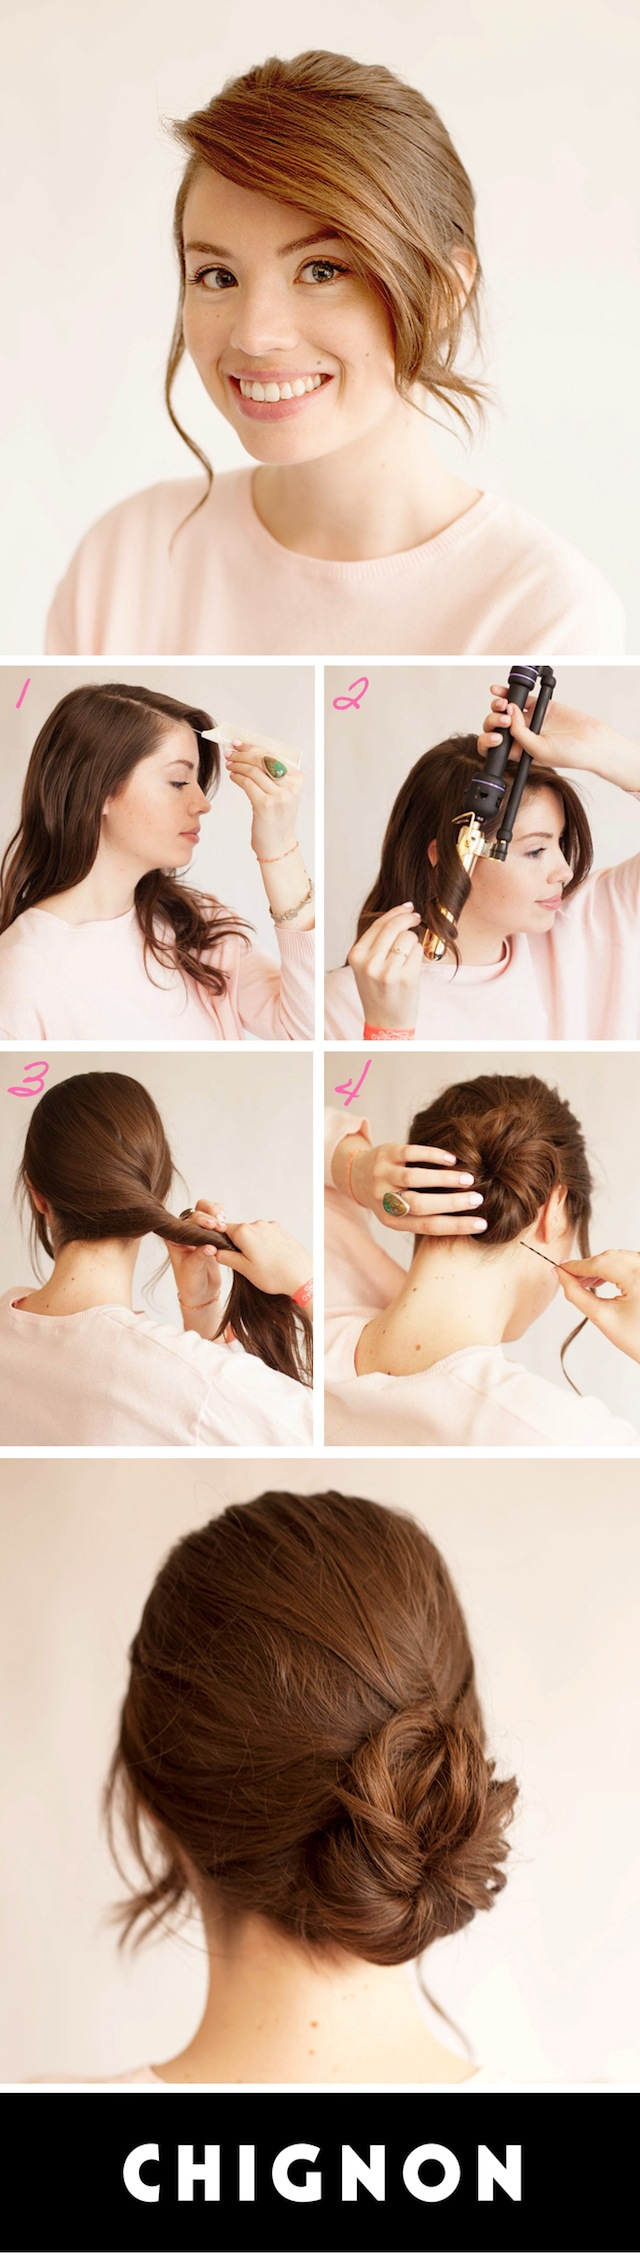 Chignon_Article